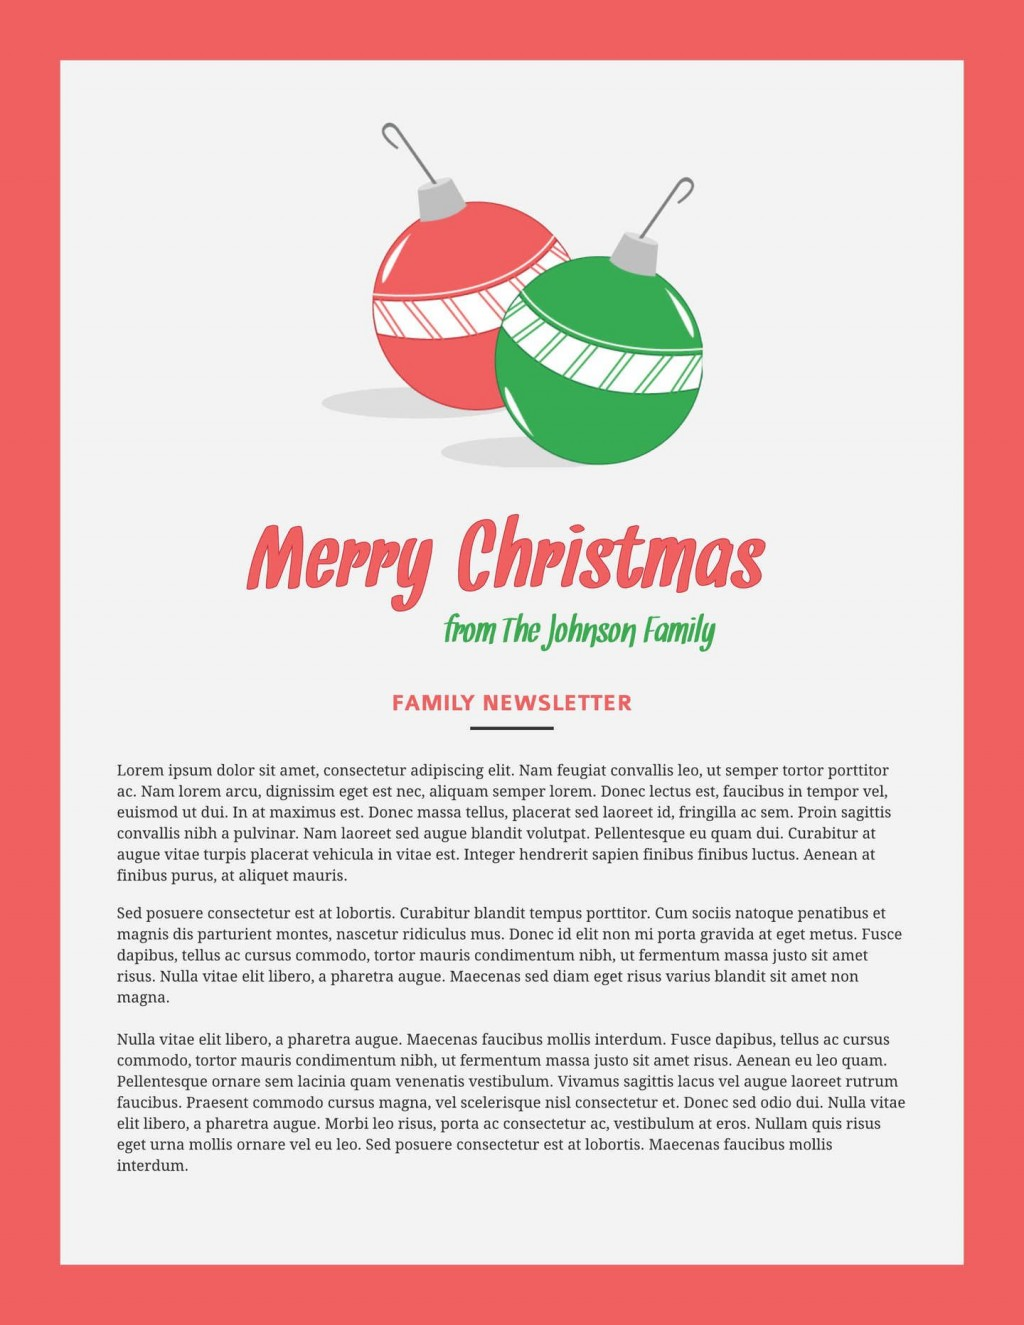 007 Stirring Holiday E Mail Template Inspiration  Templates Mailchimp EmailLarge